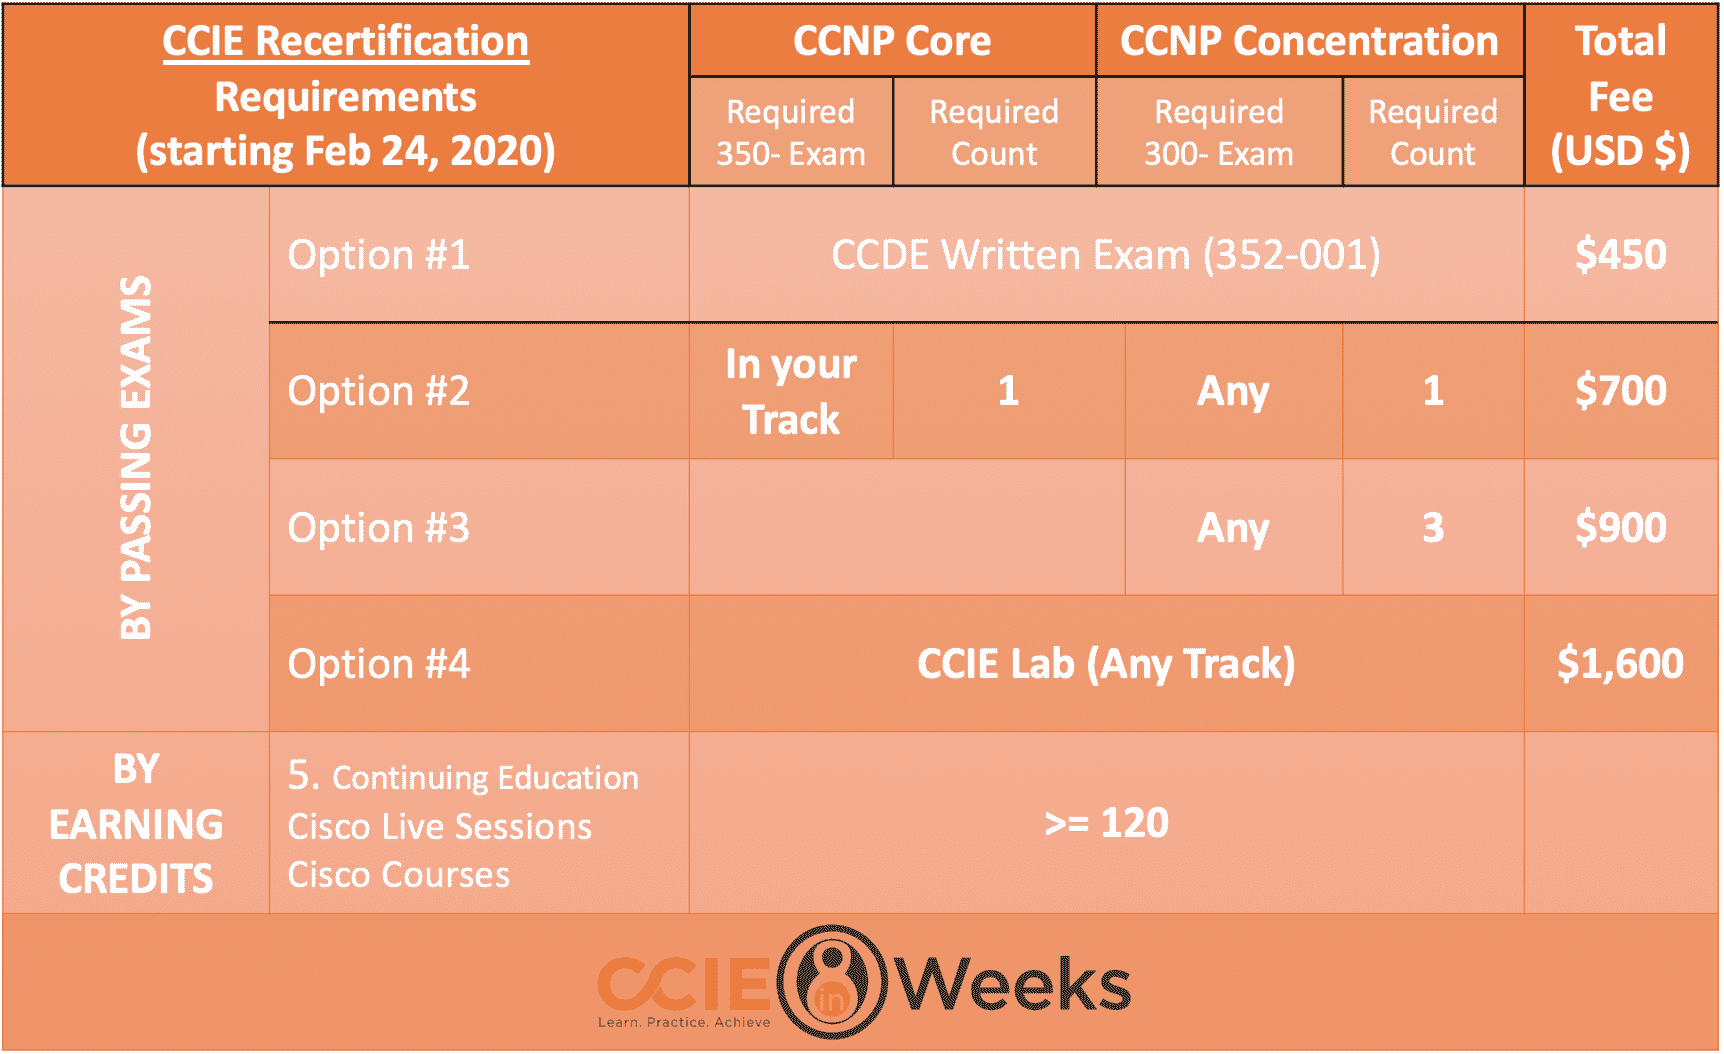 cisco next-level ccie recertification requirements and options